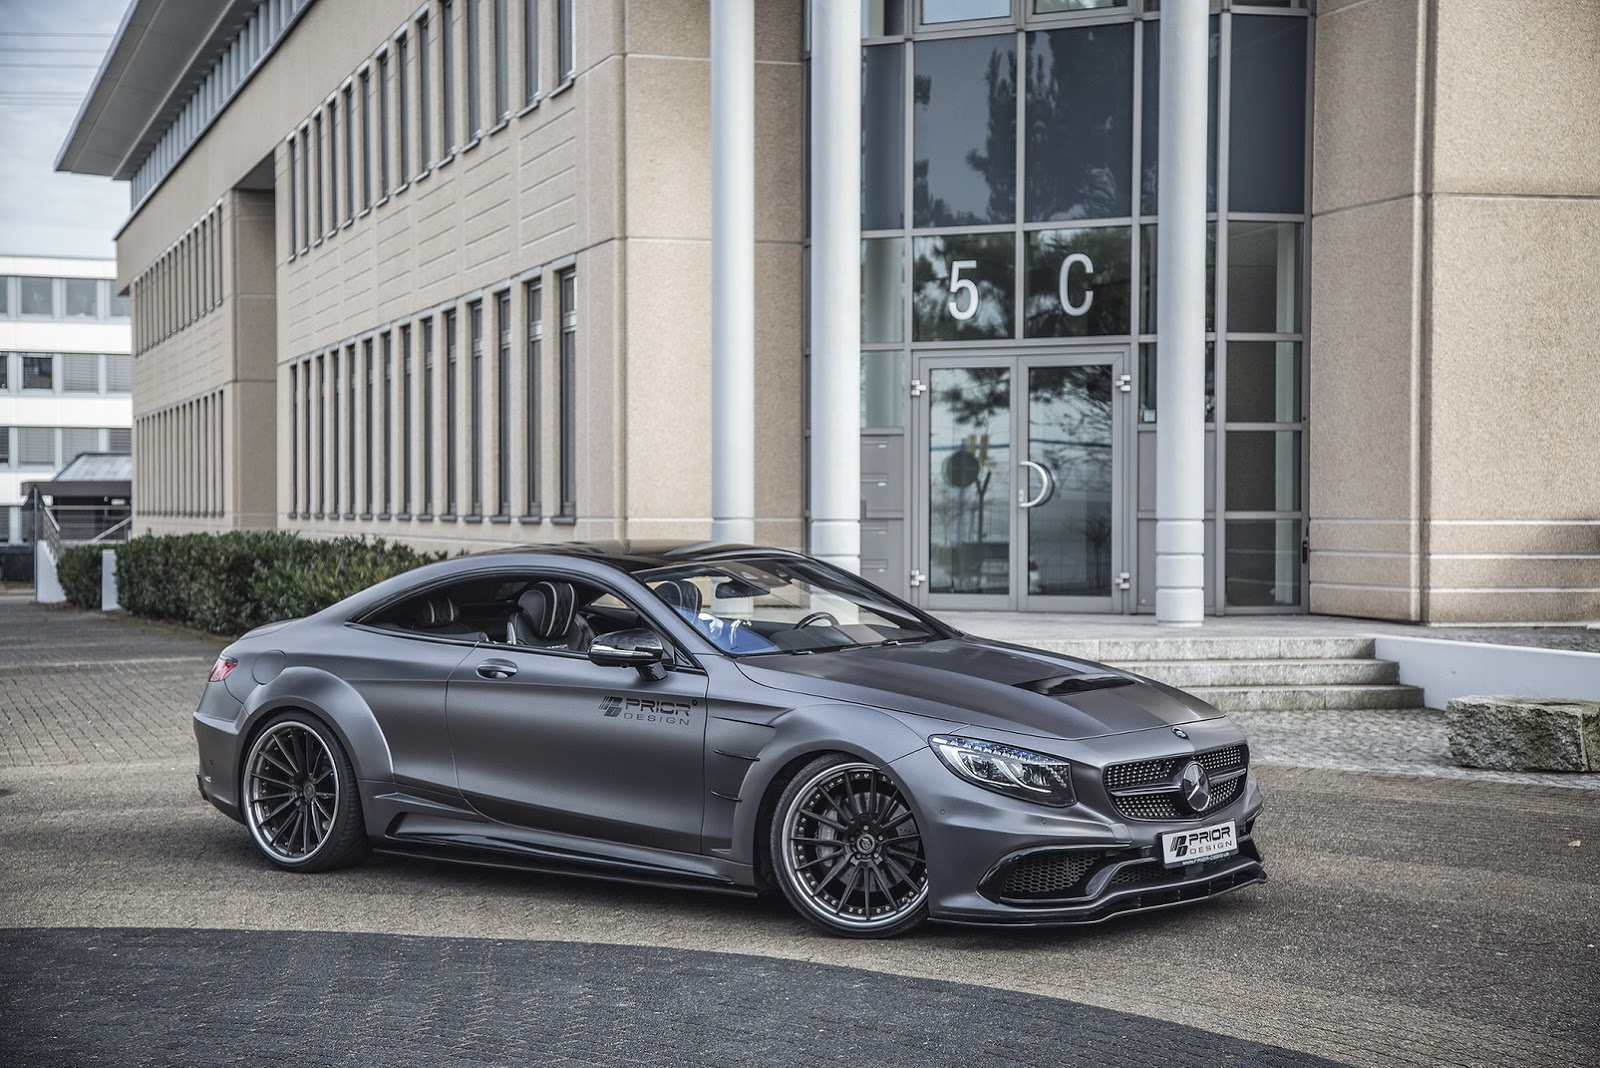 mercedes benz s class coupe looks dangerous with prior design s wide pd75sc body kit carz tuning. Black Bedroom Furniture Sets. Home Design Ideas